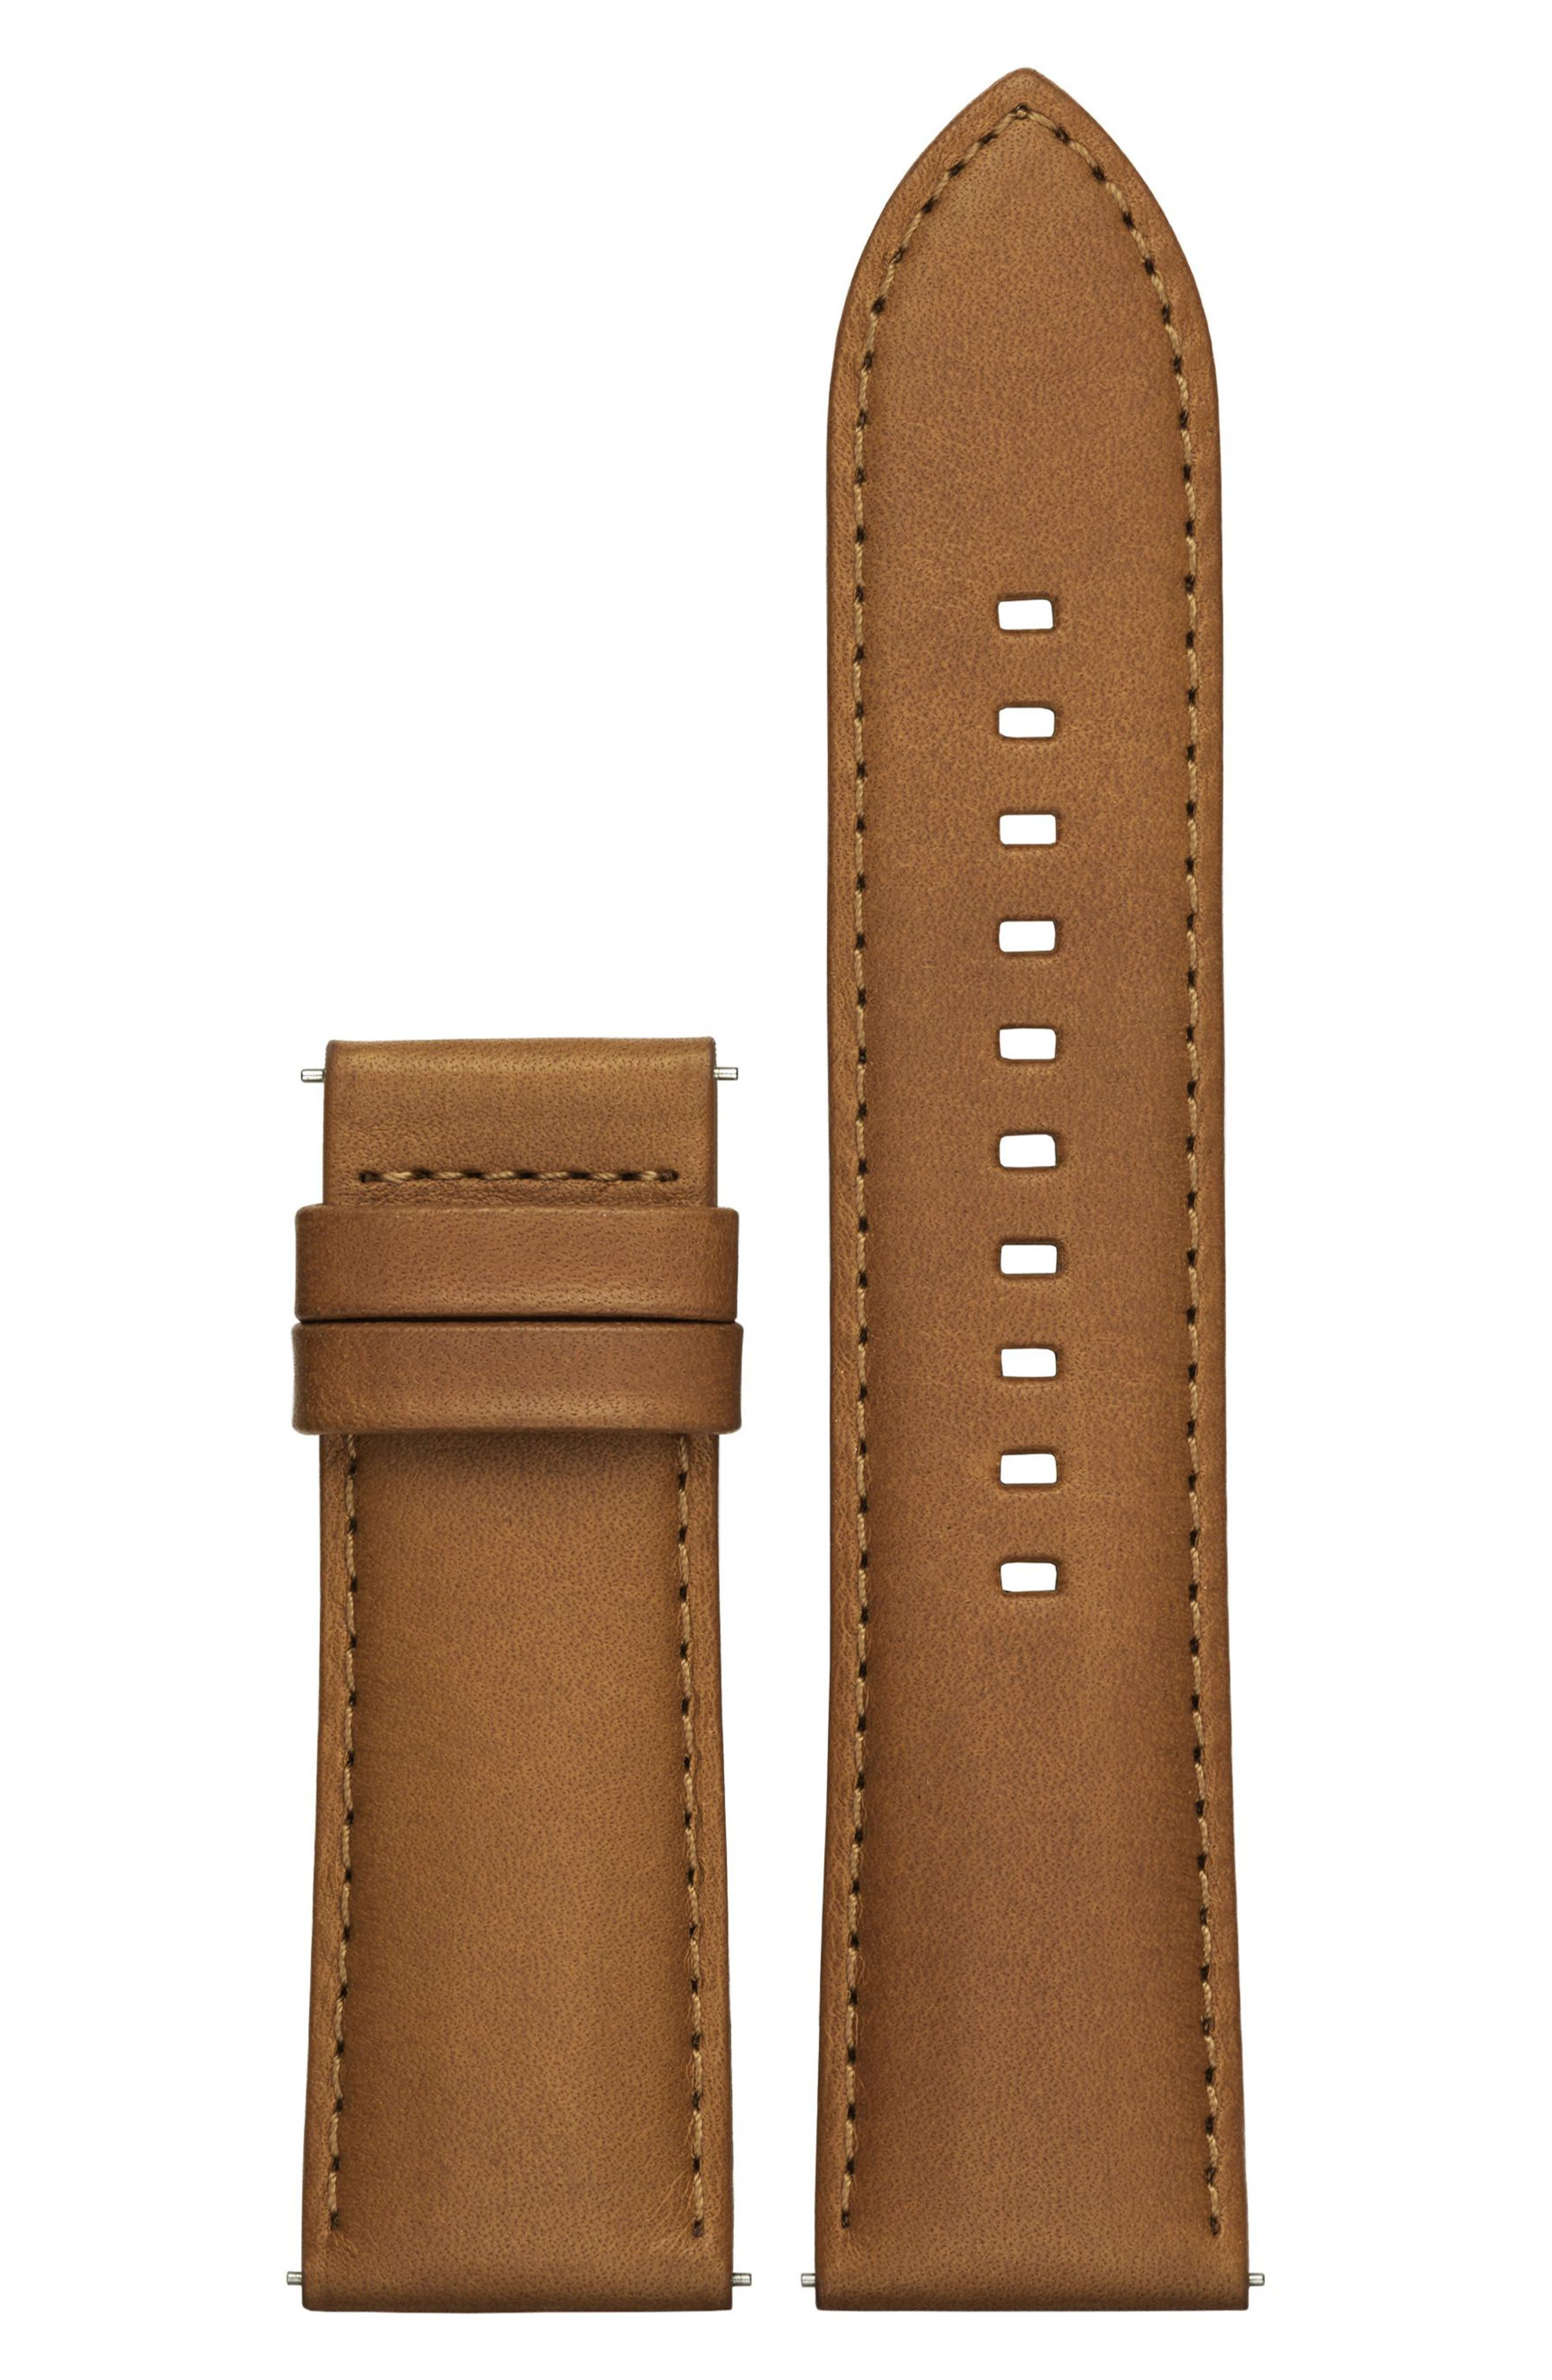 Alternate Image 1 Selected - Michael Kors Access Grayson 24mm Leather Watch Strap